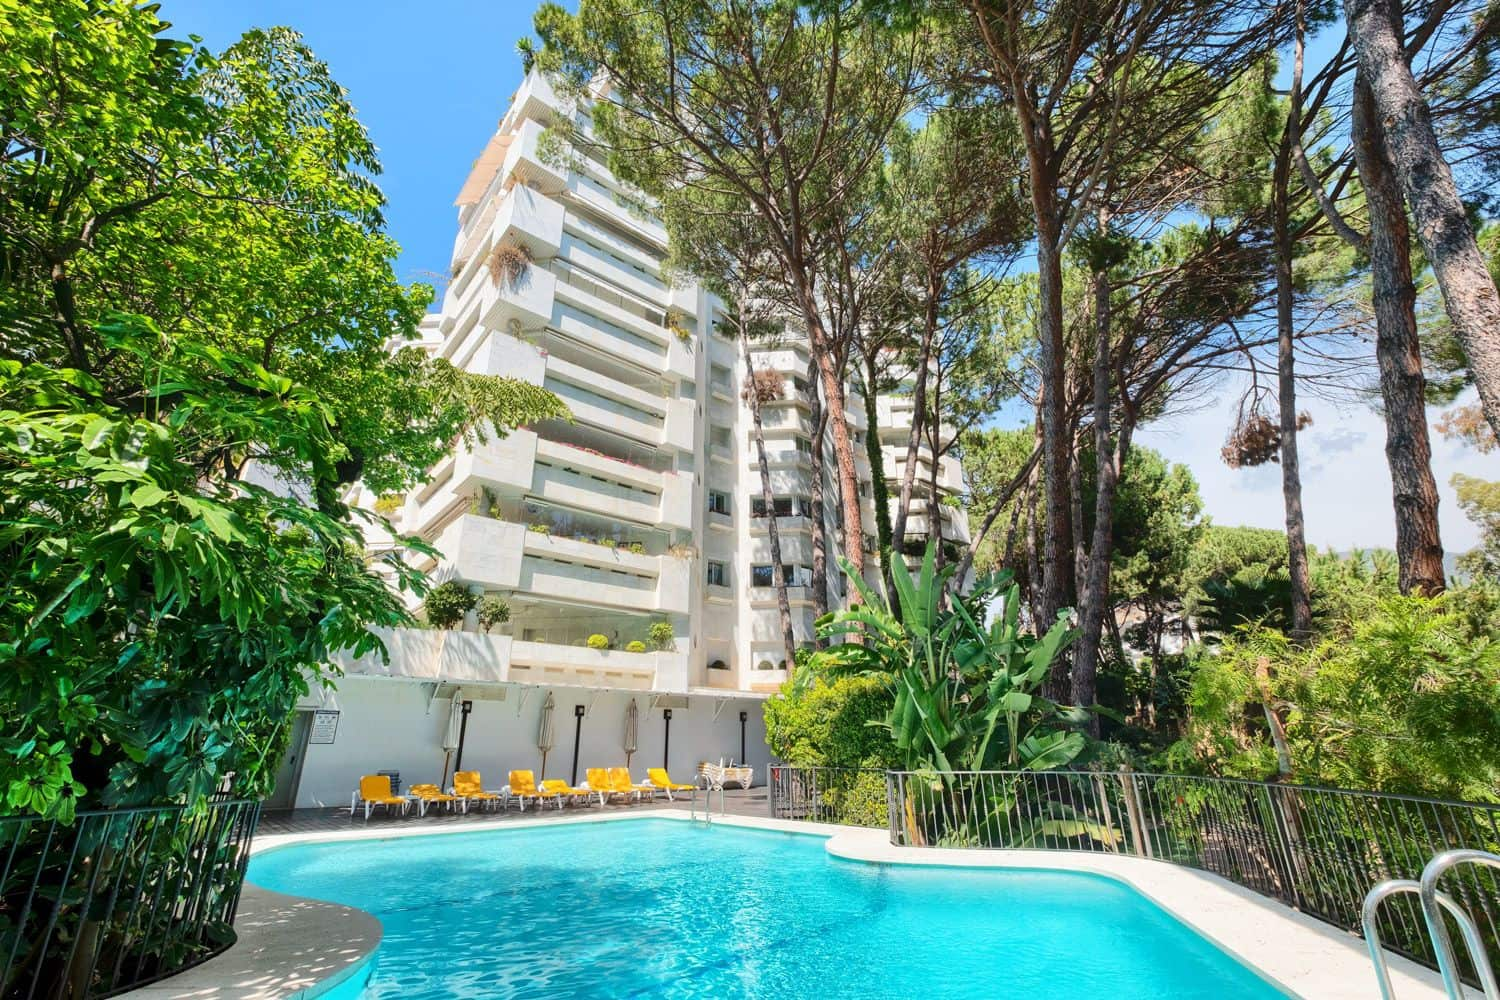 3 bedroom Flat for sale in Marbella with pool garage - € 995,000 (Ref: 5181860)